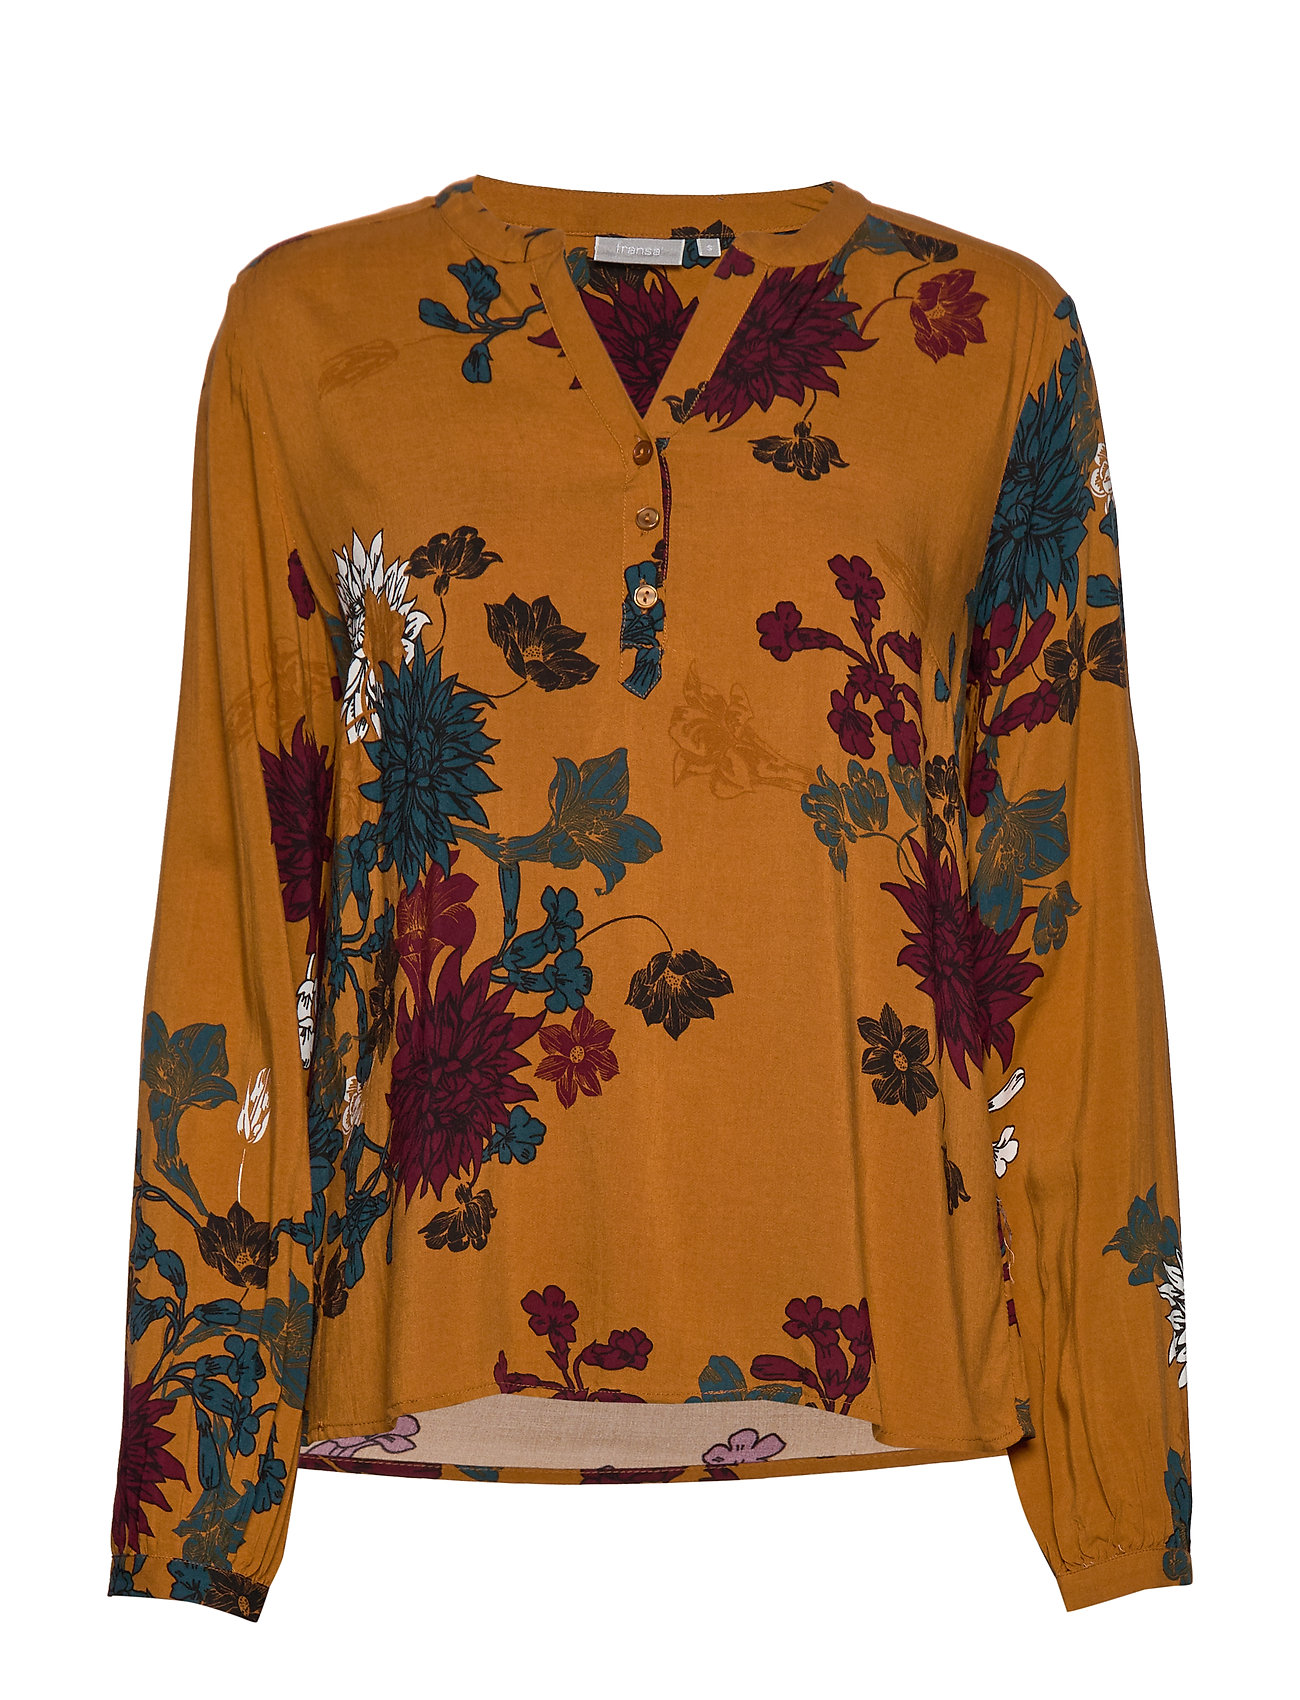 Fransa FRFACAMPA 1 Blouse - FLOWER - CATHAY SPICE MIX